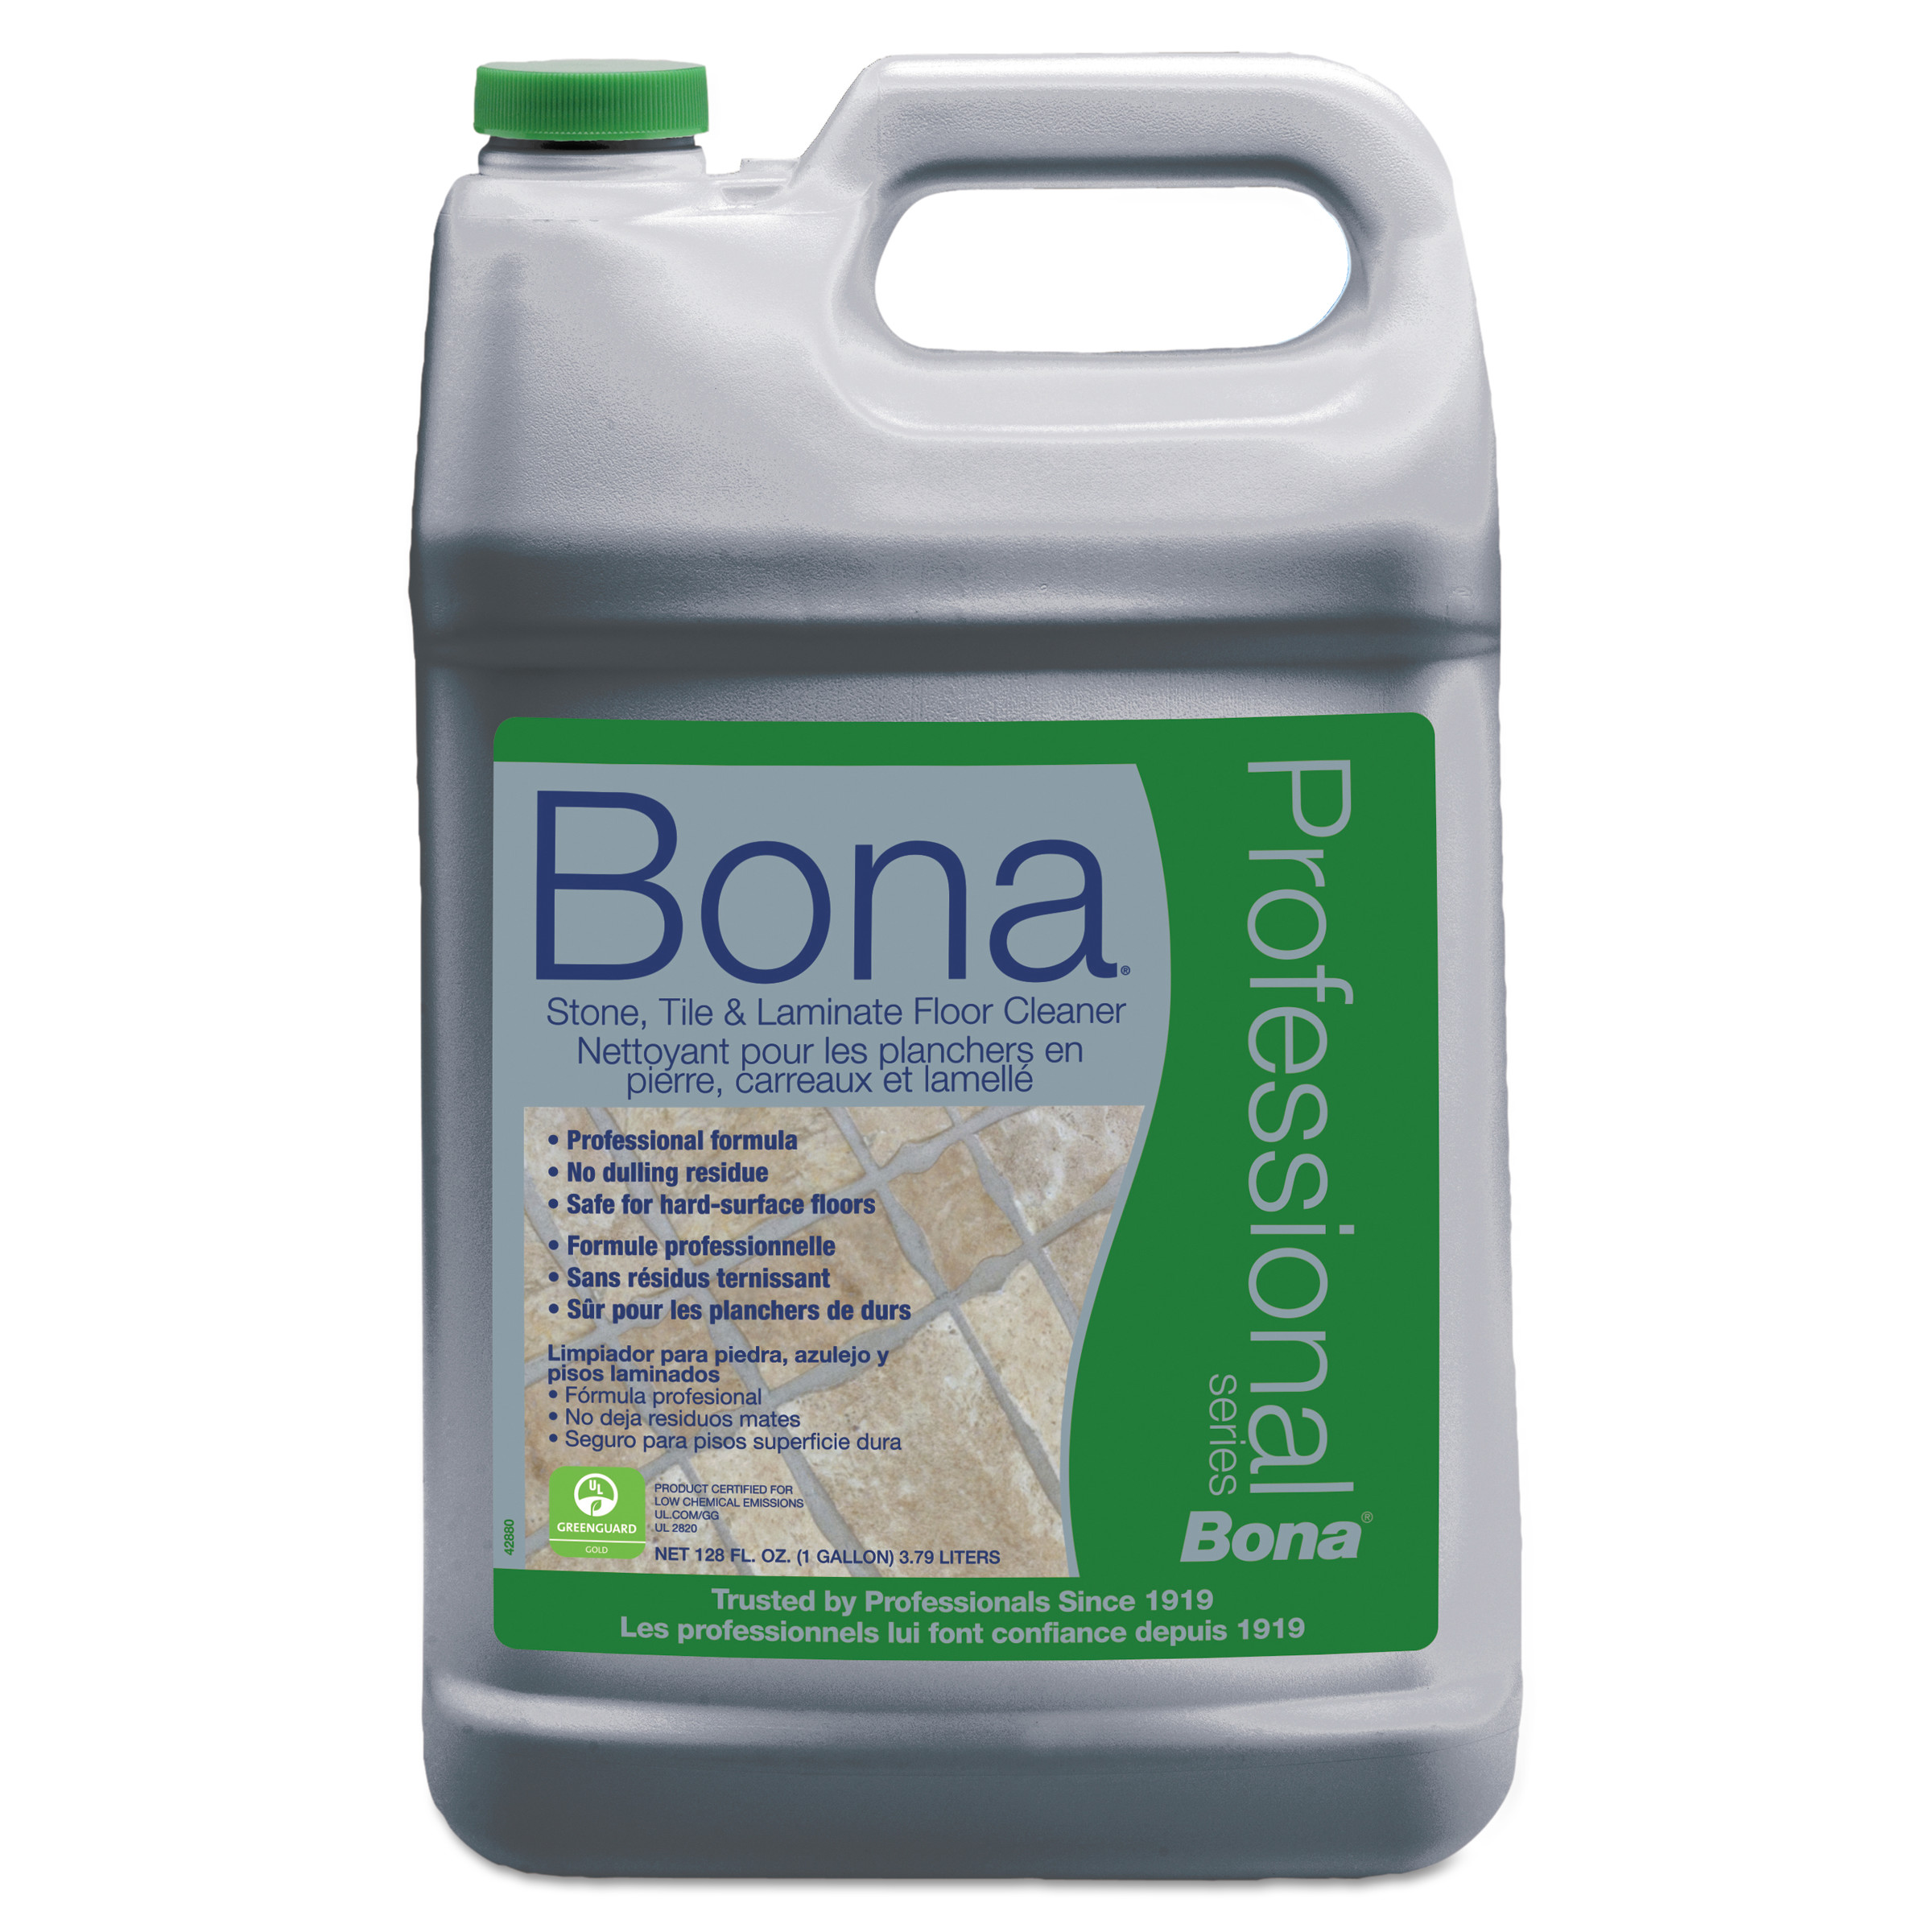 Bona stone tile laminate floor cleaner fresh scent 1 gal bona stone tile laminate floor cleaner fresh scent 1 gal refill bottle walmart dailygadgetfo Choice Image